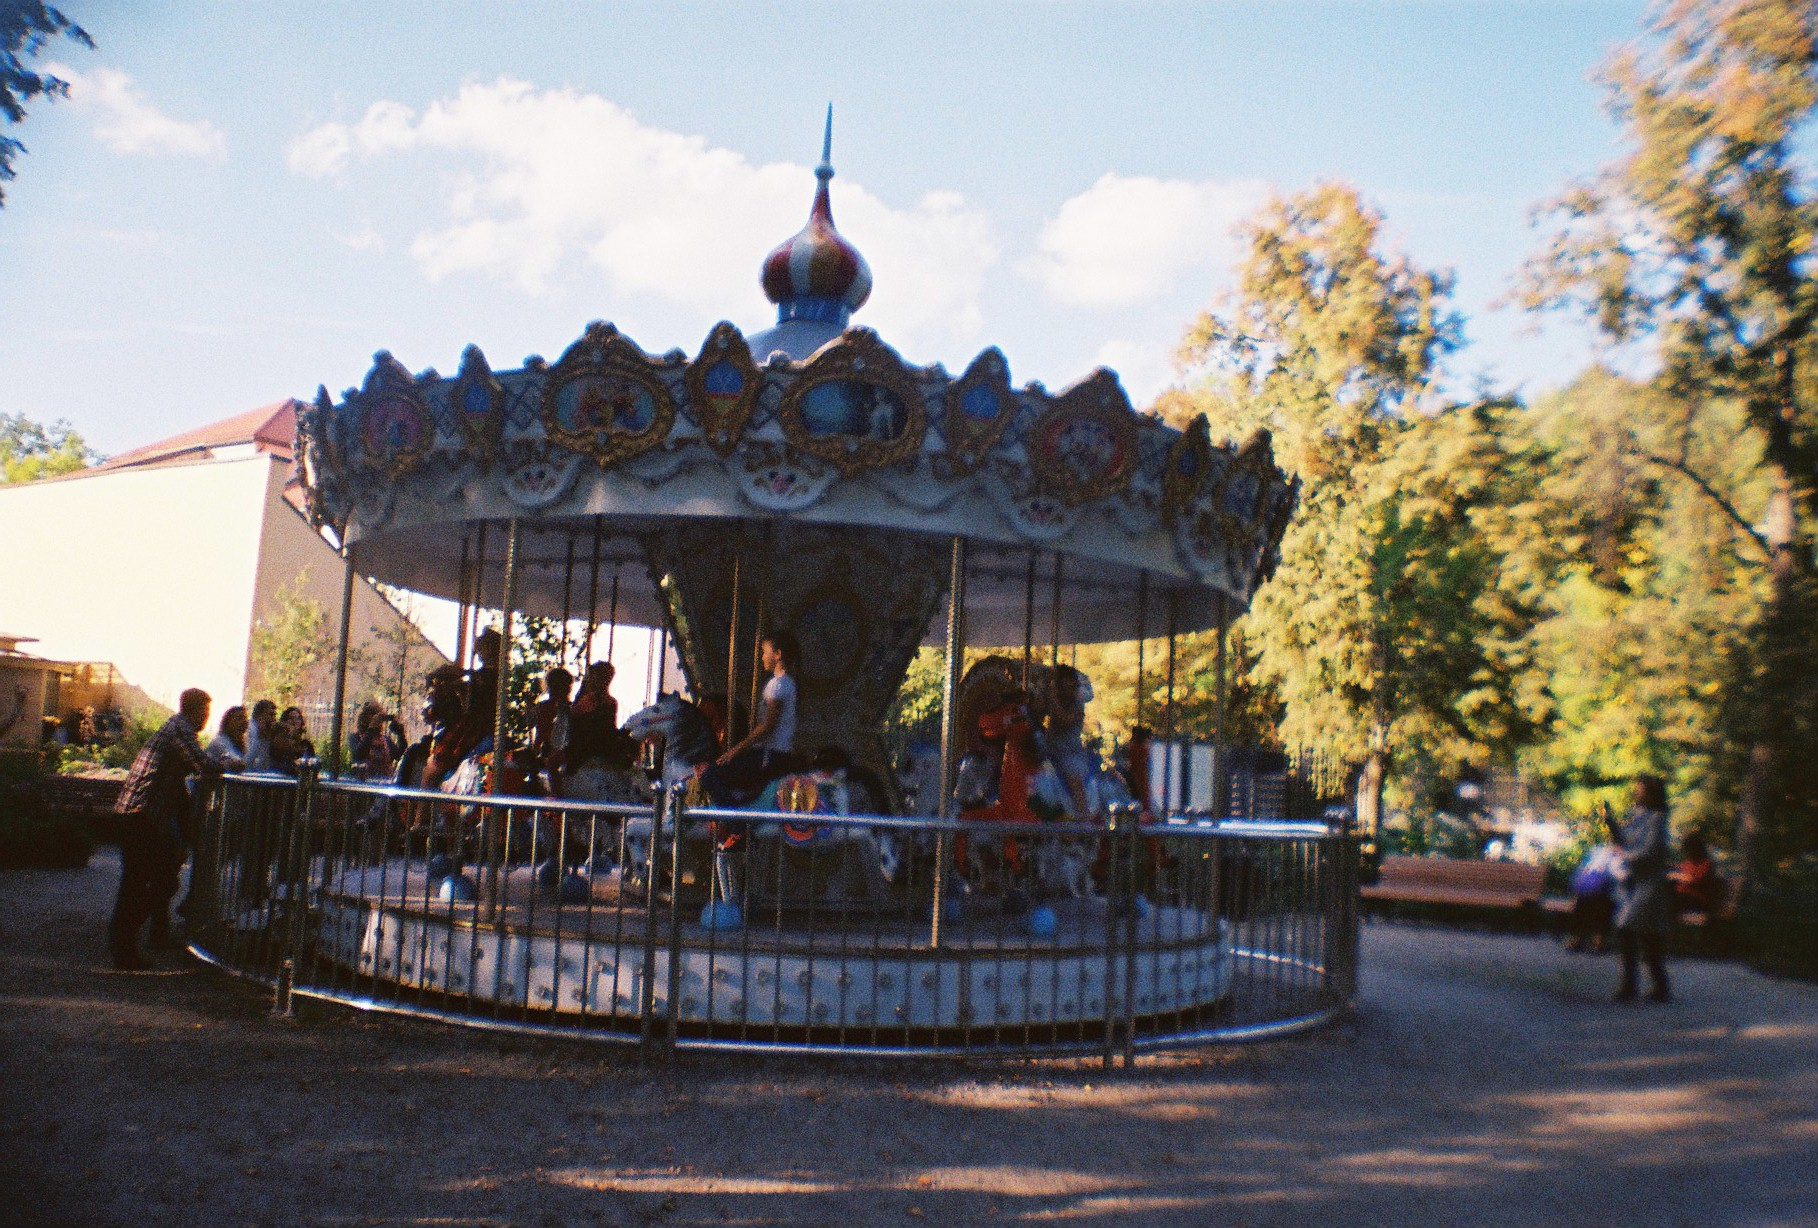 Carousel in the garden